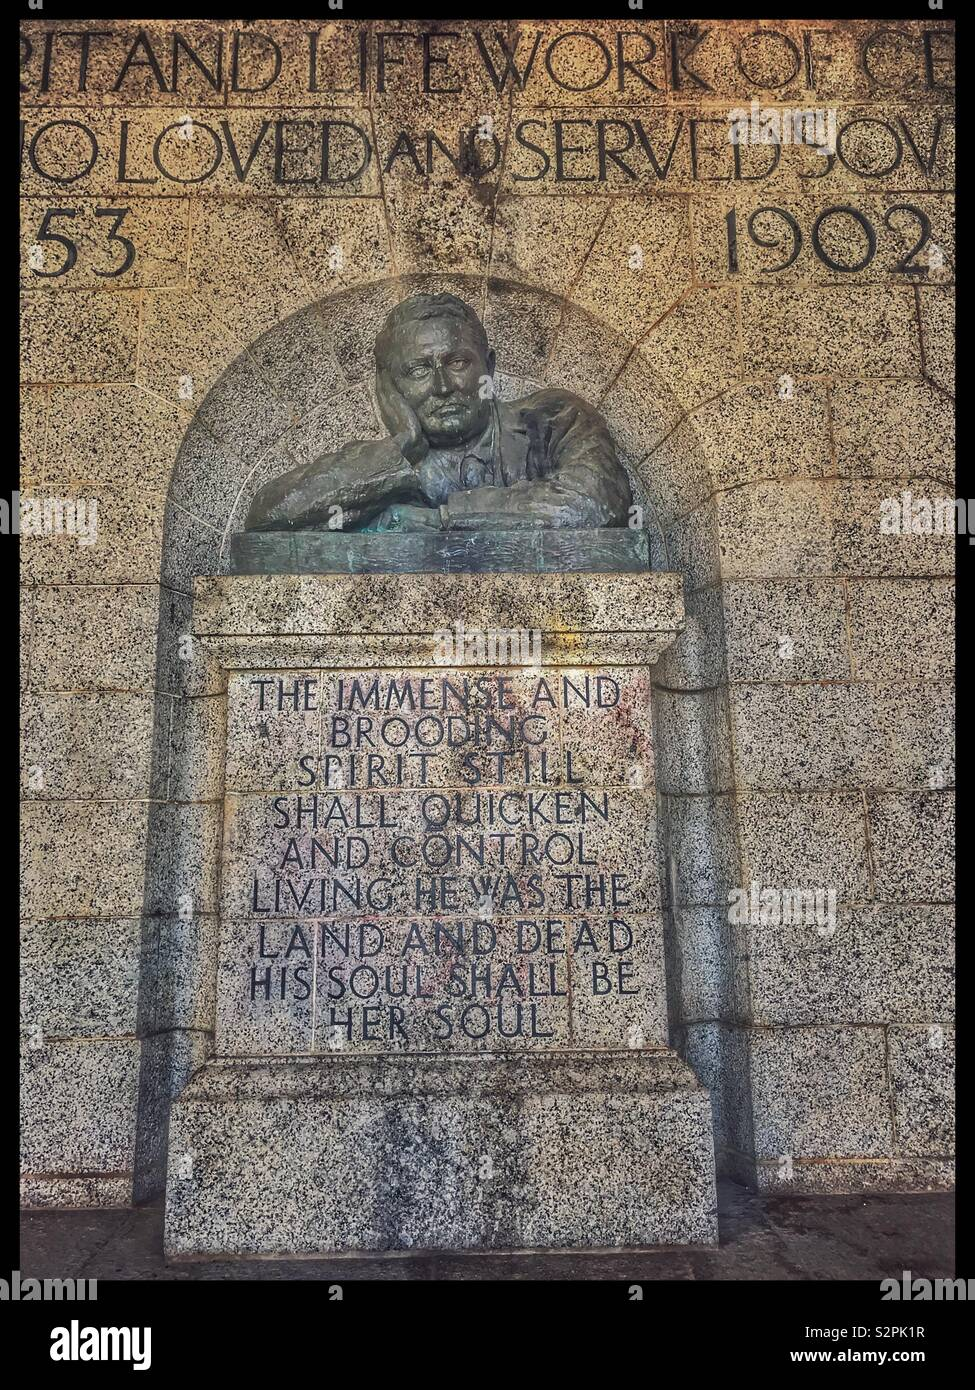 Rhodes Memorial, Cape Town, South Africa. - Stock Image